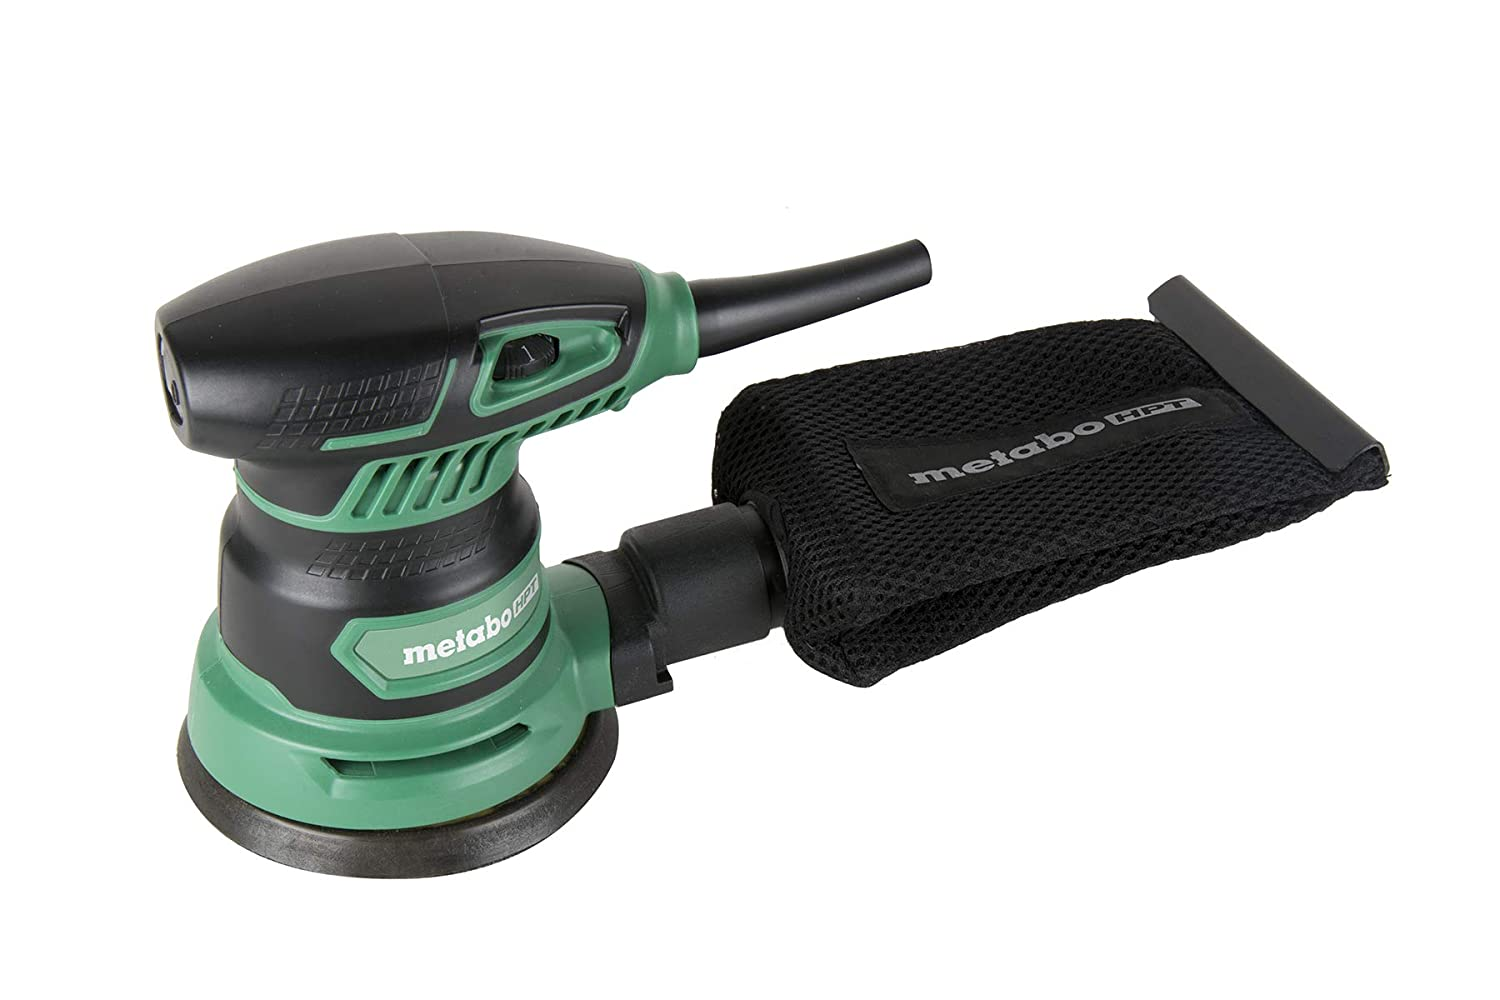 Metabo HPT SV13YST 5-Inch Random Orbit Sander, Variable Speed, Powerful 230W 2.8 Amp Motor, Soft Elastomer Grip, Includes 5 Pieces of Sanding Paper, Dust Bag, Vacuum Adapter, 5-Year Warranty